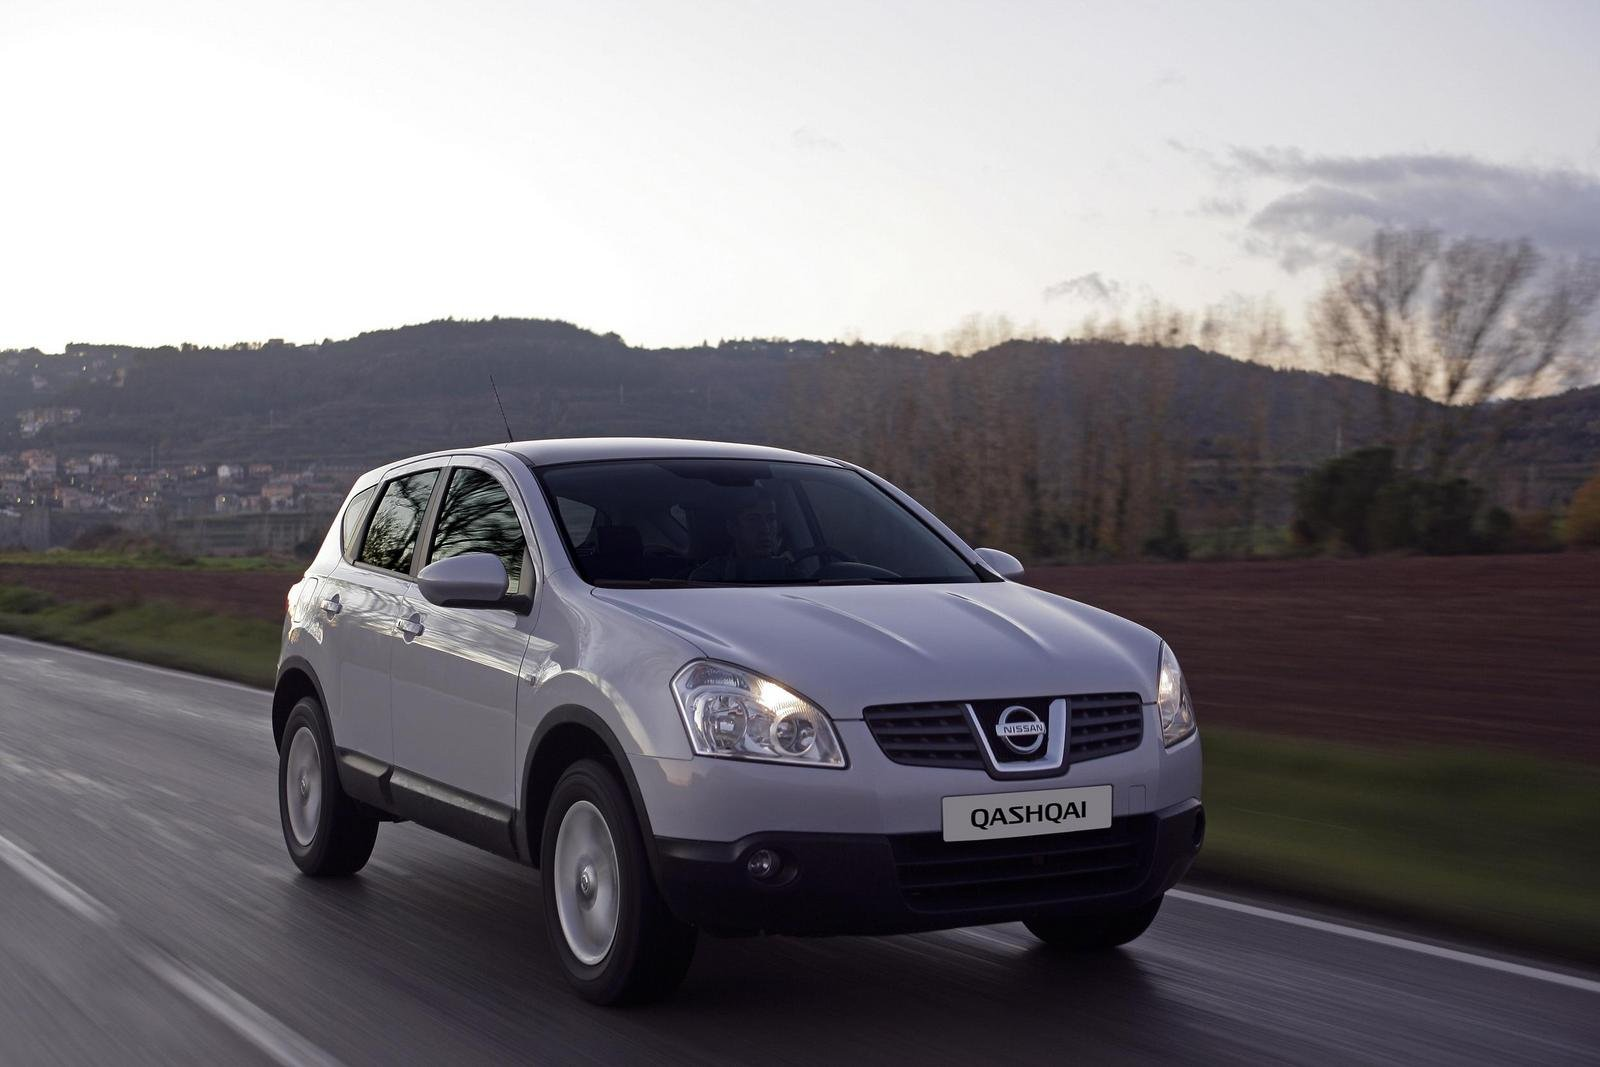 2007 nissan qashqai picture 144582 car review top speed. Black Bedroom Furniture Sets. Home Design Ideas